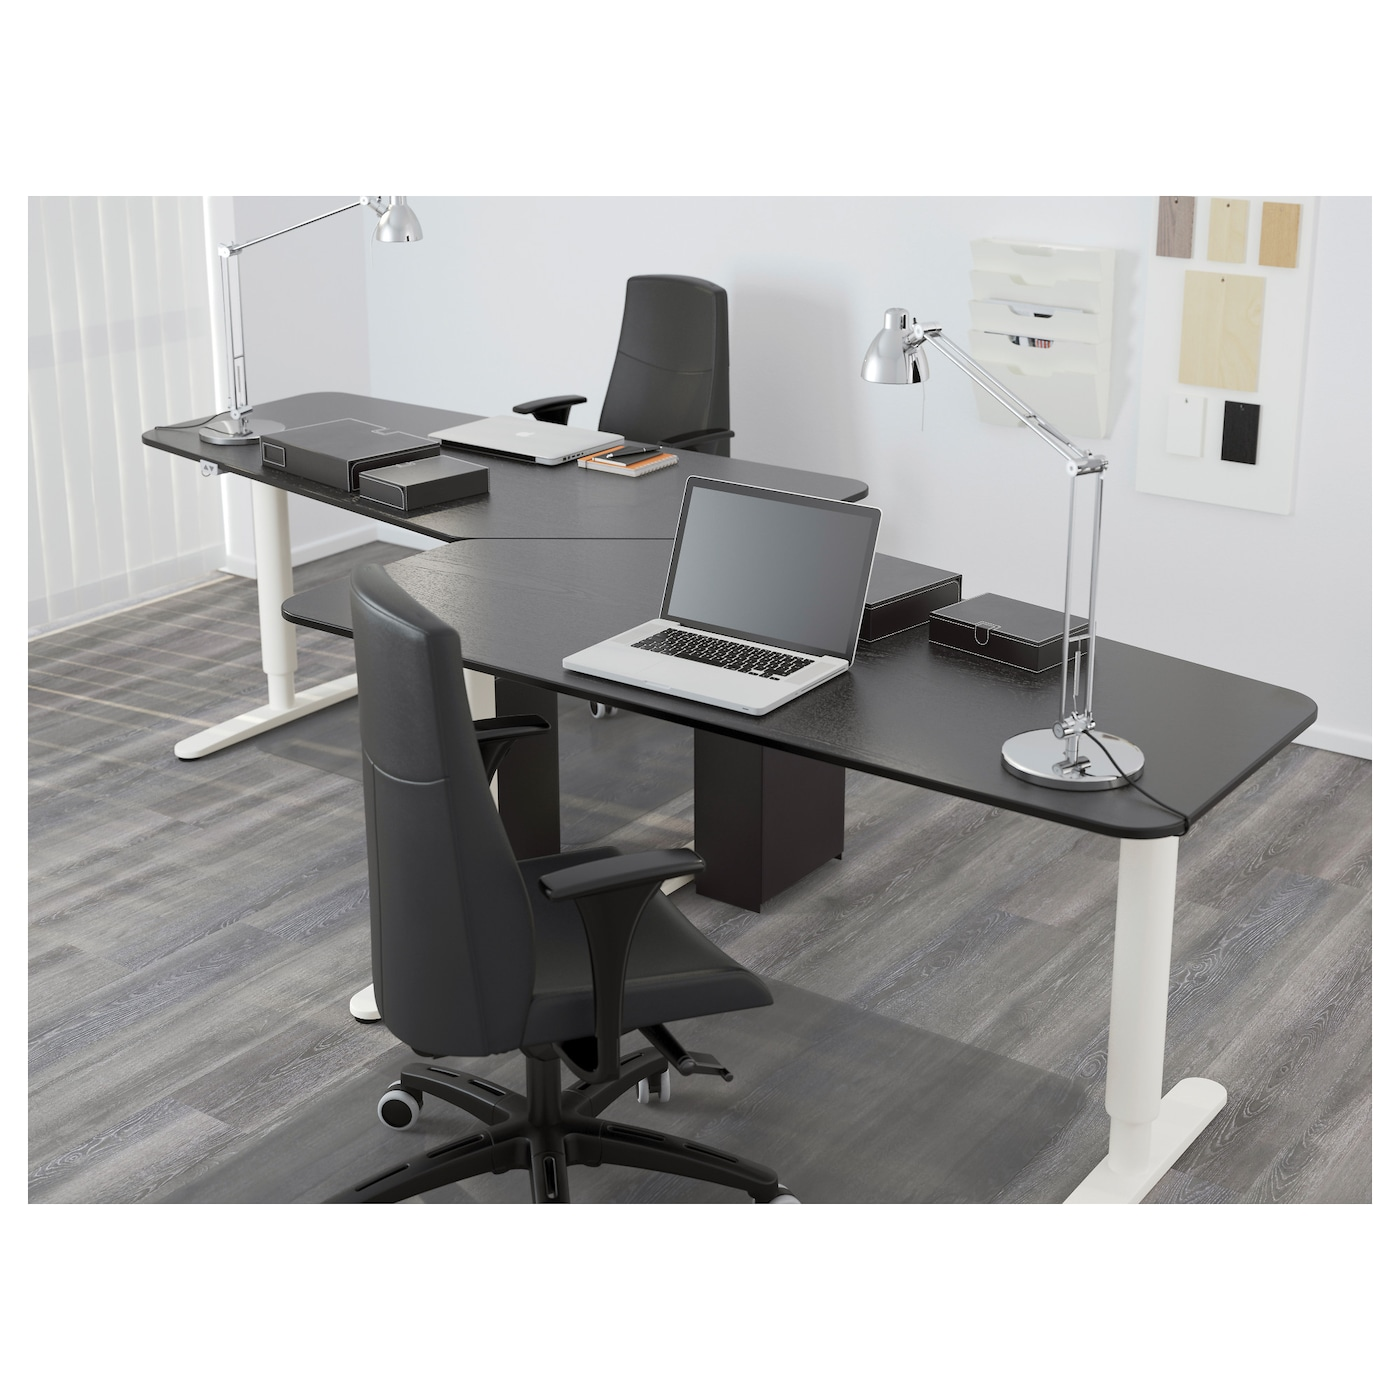 bekant 5 sided desk sit stand black brown white 160x80 cm ikea. Black Bedroom Furniture Sets. Home Design Ideas